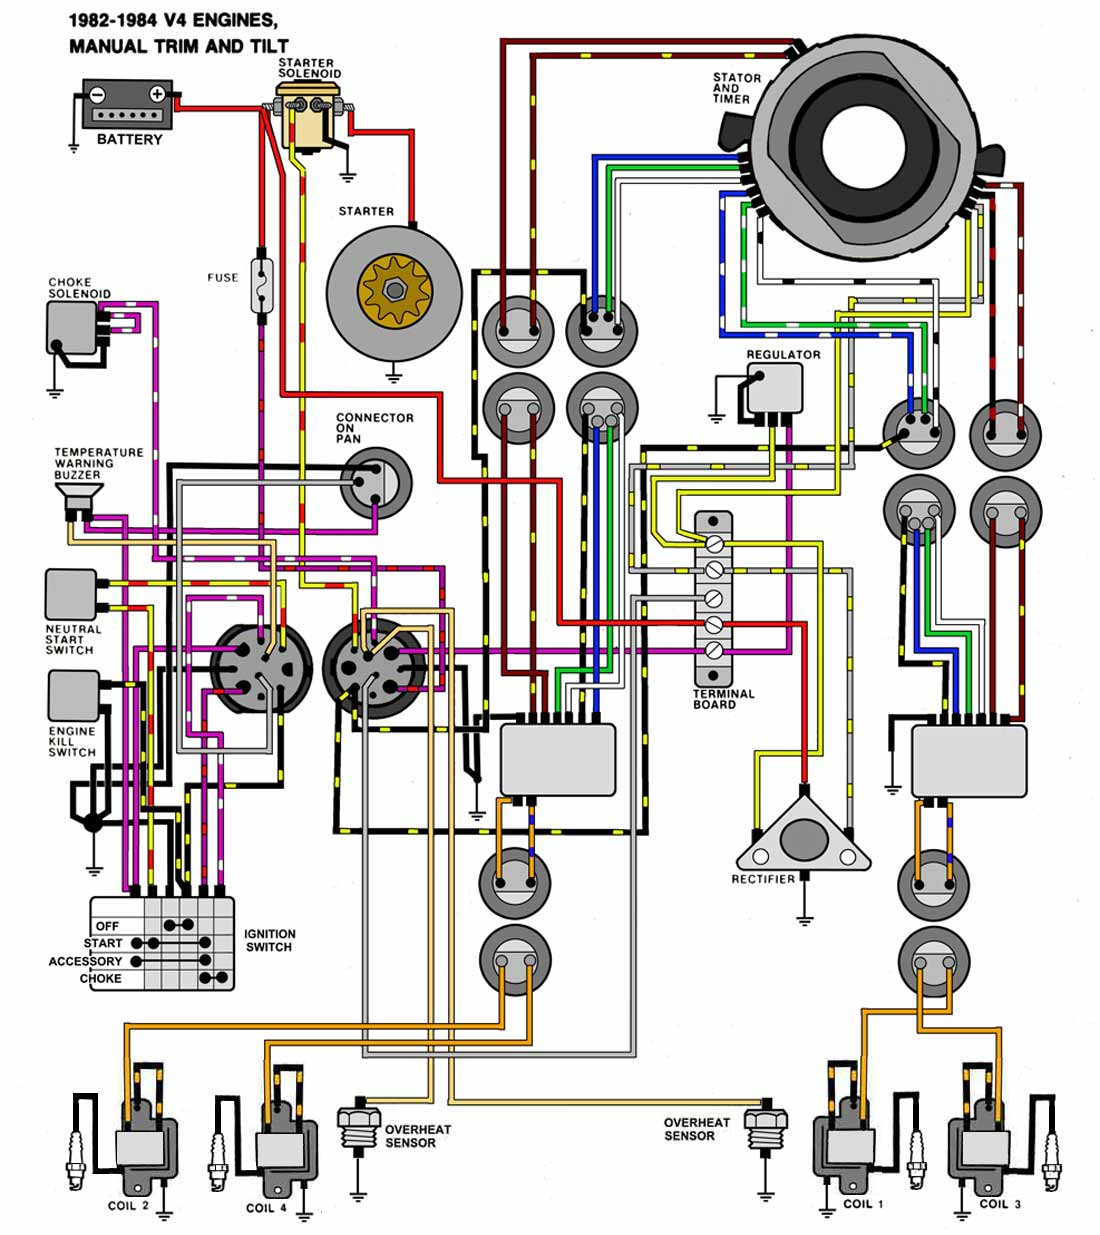 150 Hp Johnson Outboard Wiring Diagram - Wiring Diagram Liry  Johnson Outboard Wiring Diagram on 1985 40 hp wiring diagram, boat trim gauge wiring diagram, eric johnson stratocaster series wiring diagram, 1977 evinrude wiring diagram, switch wiring diagram, 1995 johnson outboard engine, johnson wiring harness diagram, fuel gauge wiring diagram, 25 hp johnson outboard diagram, mercury 1150 wiring diagram, lace sensor wiring diagram, 50 hp evinrude wiring diagram, 35 hp evinrude wiring diagram, johnson outboard motor diagram,